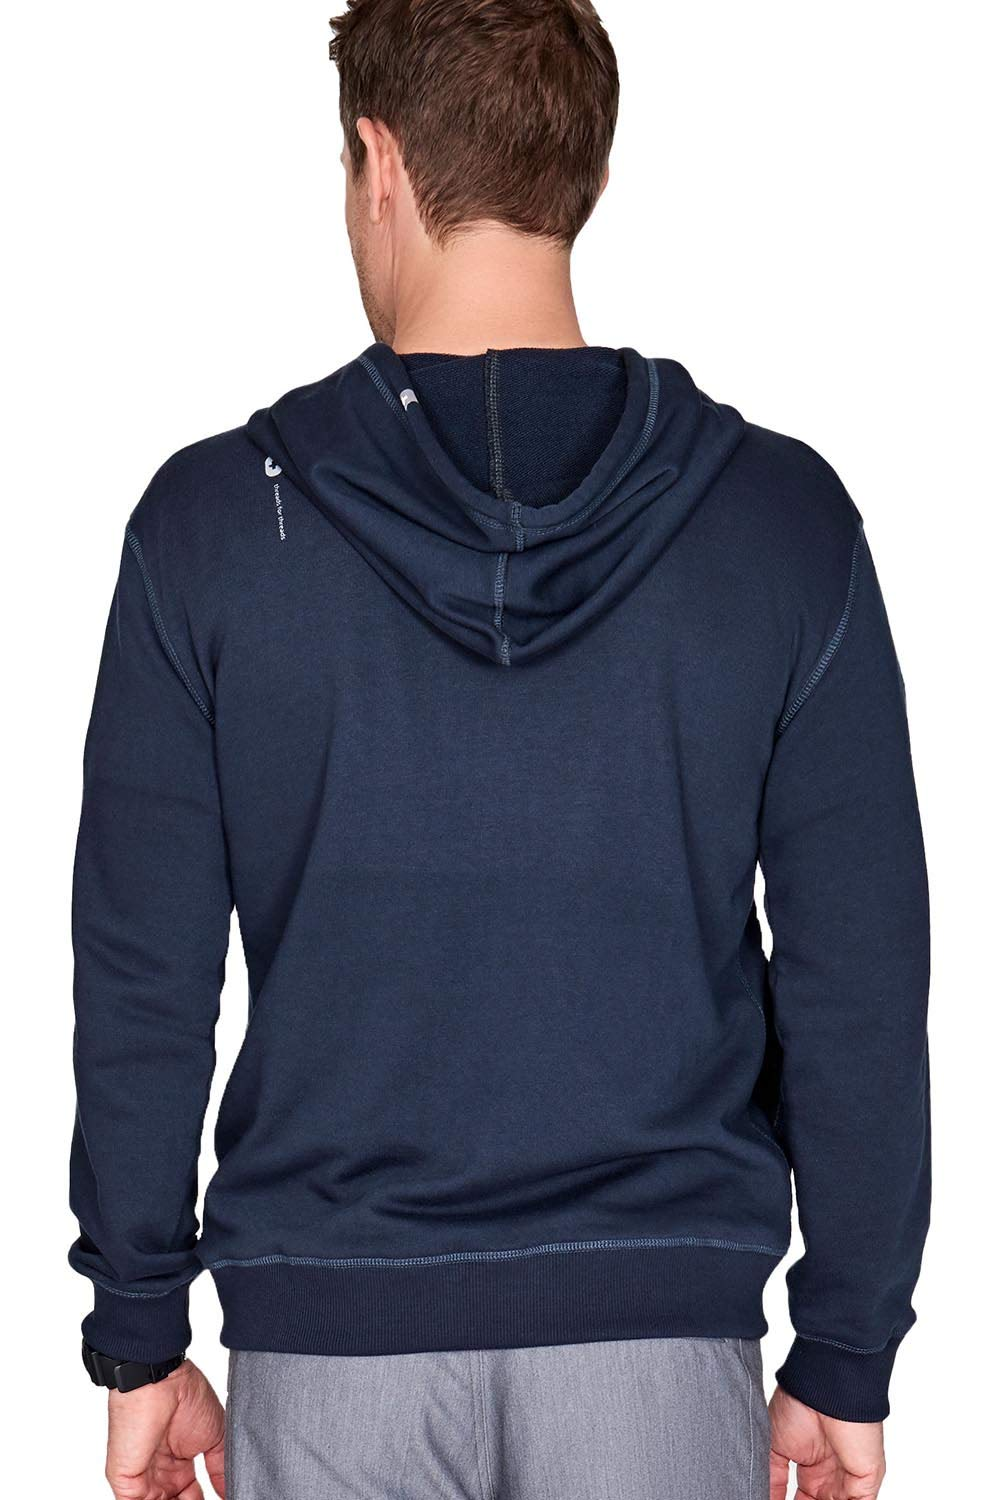 FIGS Bobi Hoodie for Men Super Soft with Ribbed Cuff Sleeve /& Bottom Band Relaxed Fit Plain Activewear Pullover Hoodie